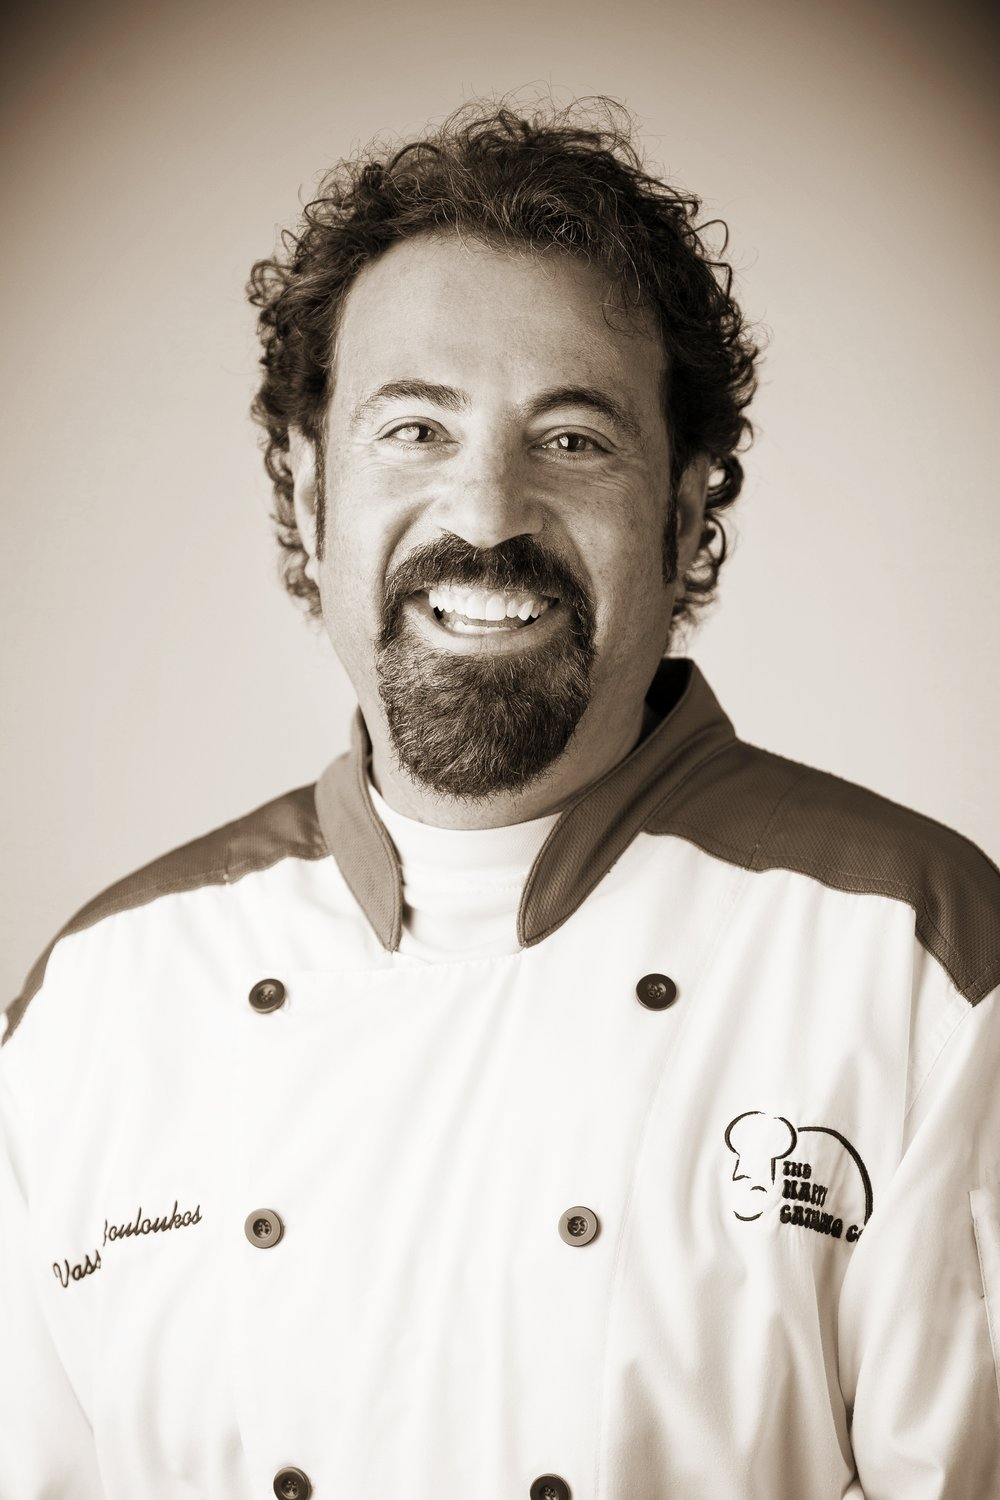 Bill chef coat headshot.jpg